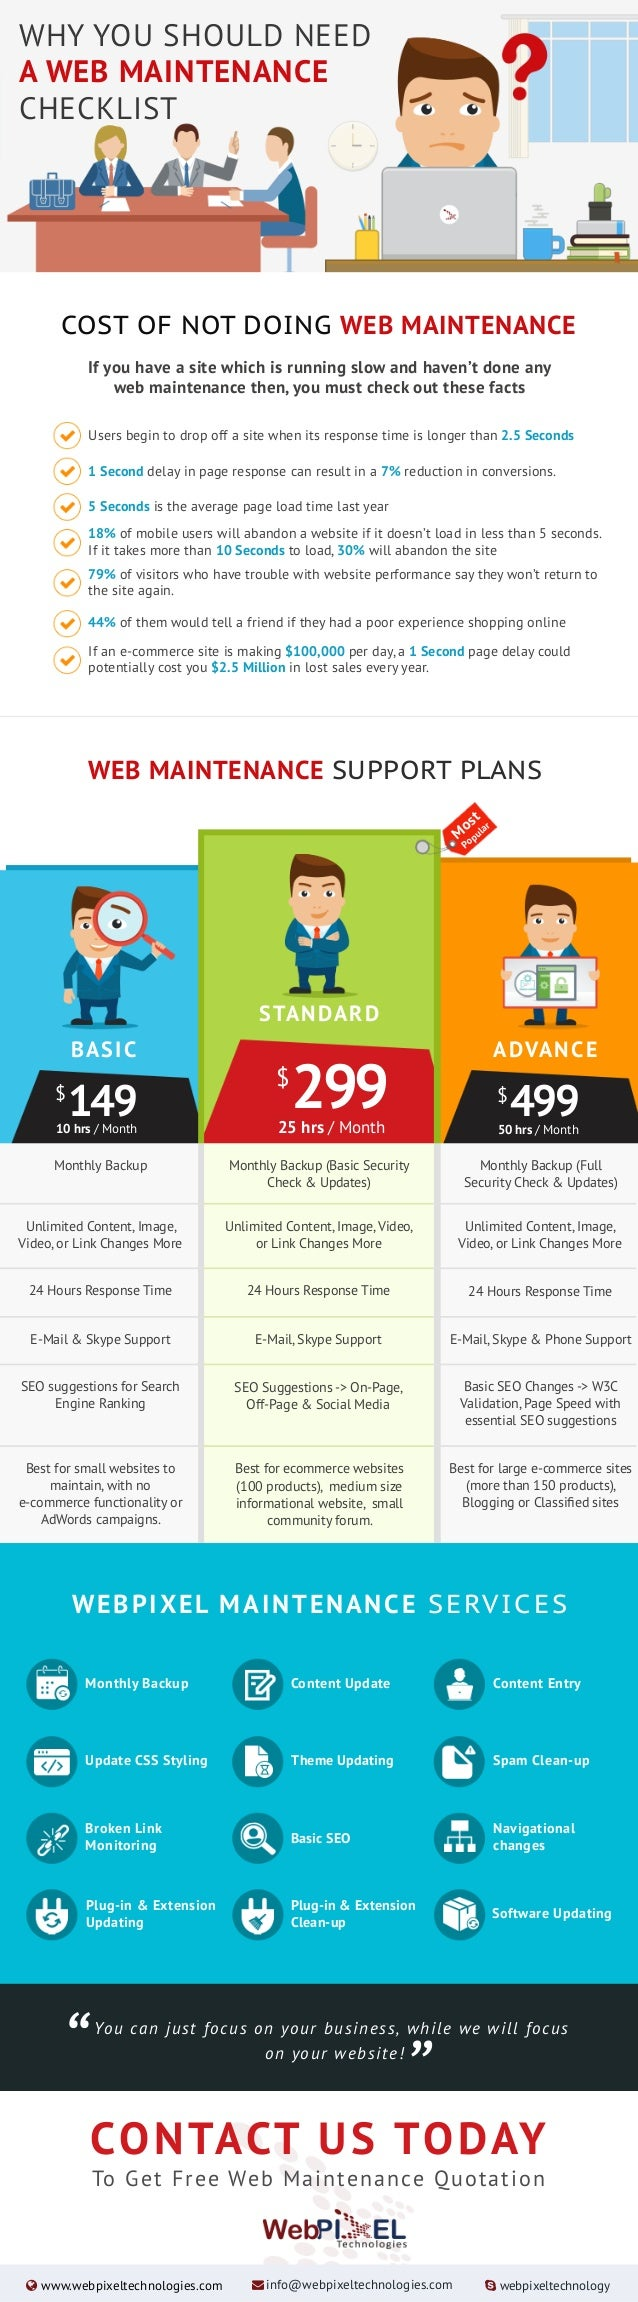 WHY YOU SHOULD NEED A WEB MAINTENANCE CHECKLIST WEB MAINTENANCE SUPPORT PLANS COST OF NOT DOING WEB MAINTENANCE If you hav...